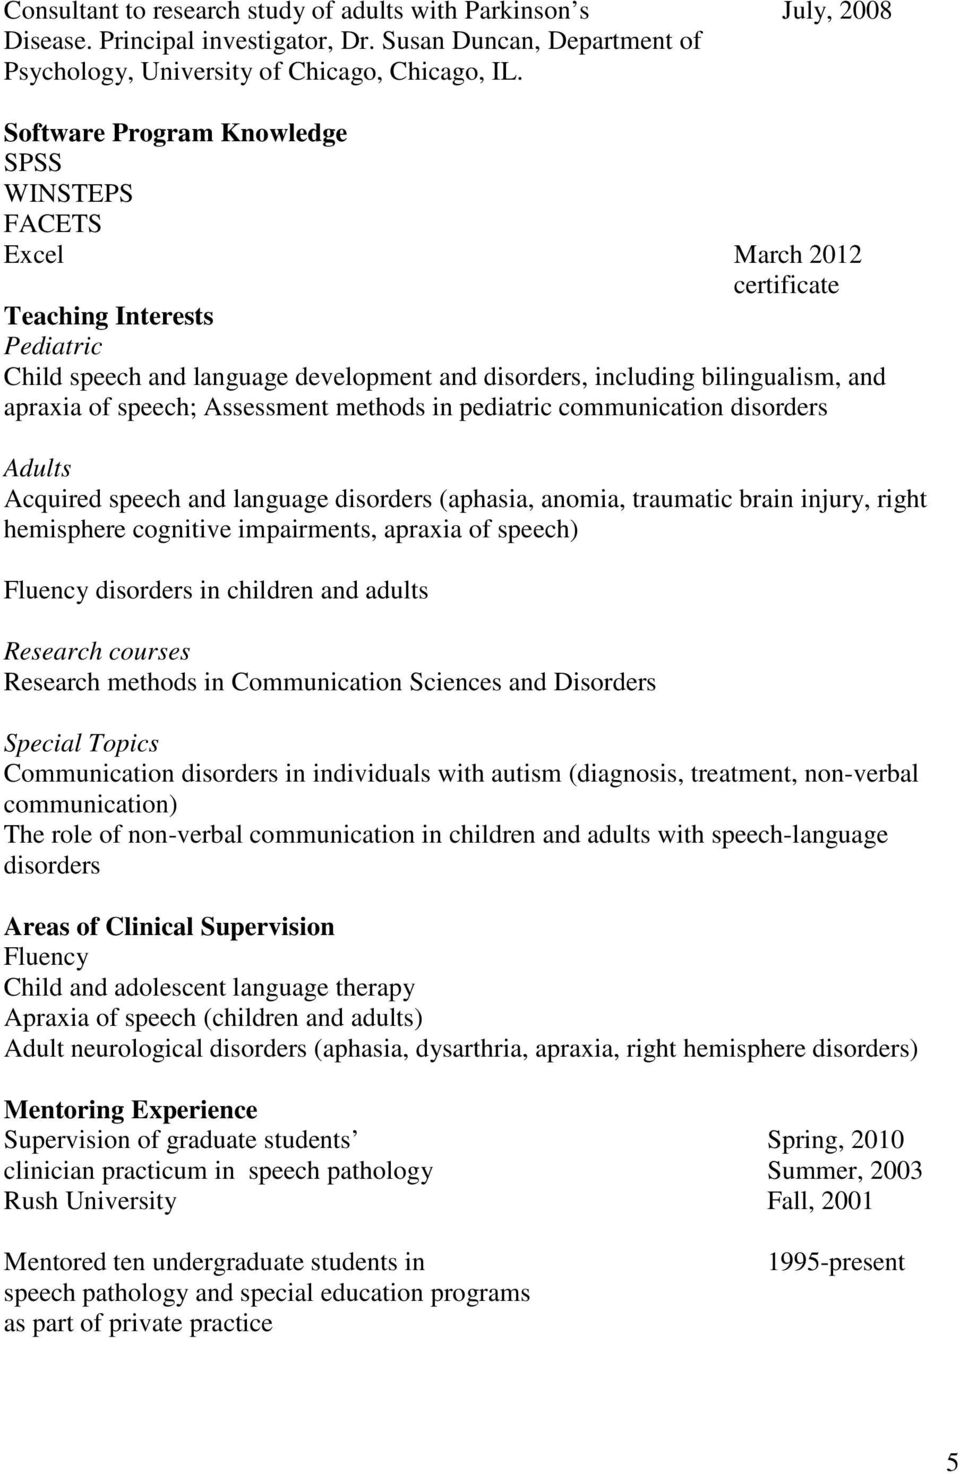 speech; Assessment methods in pediatric communication disorders Adults Acquired speech and language disorders (aphasia, anomia, traumatic brain injury, right hemisphere cognitive impairments, apraxia